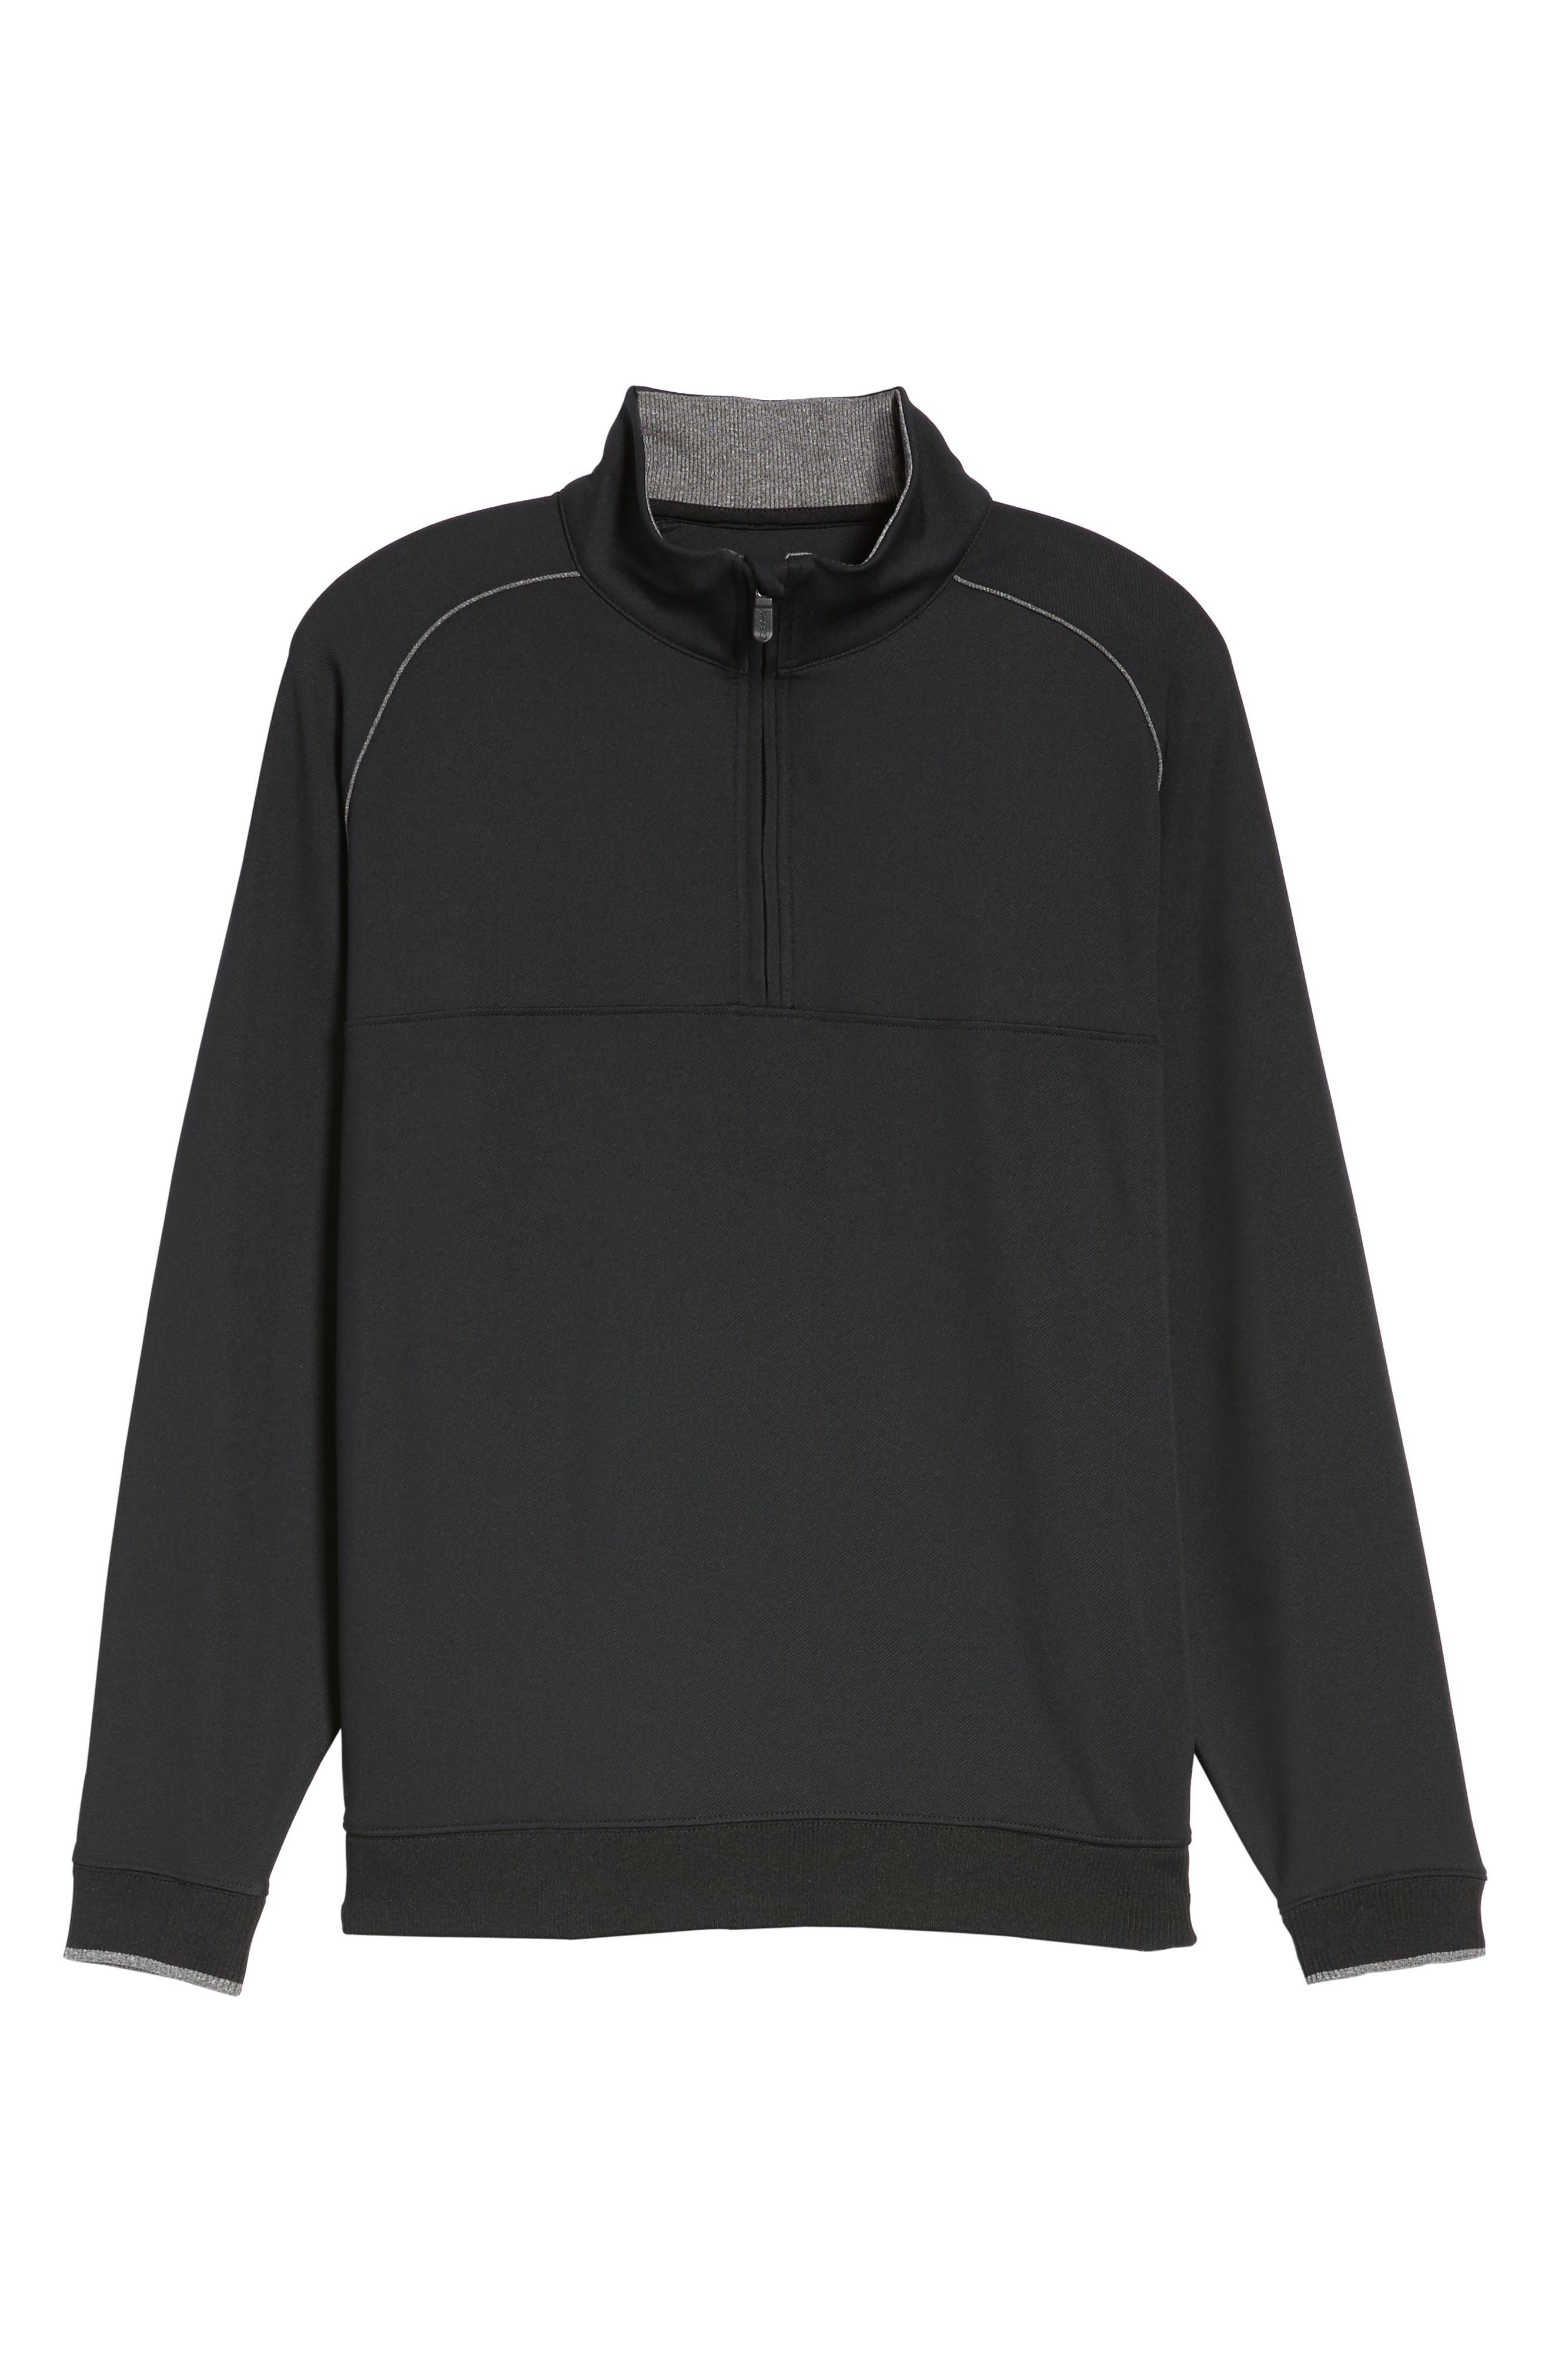 XH20 Banded Bottom Pullover,                             Alternate thumbnail 6, color,                             001